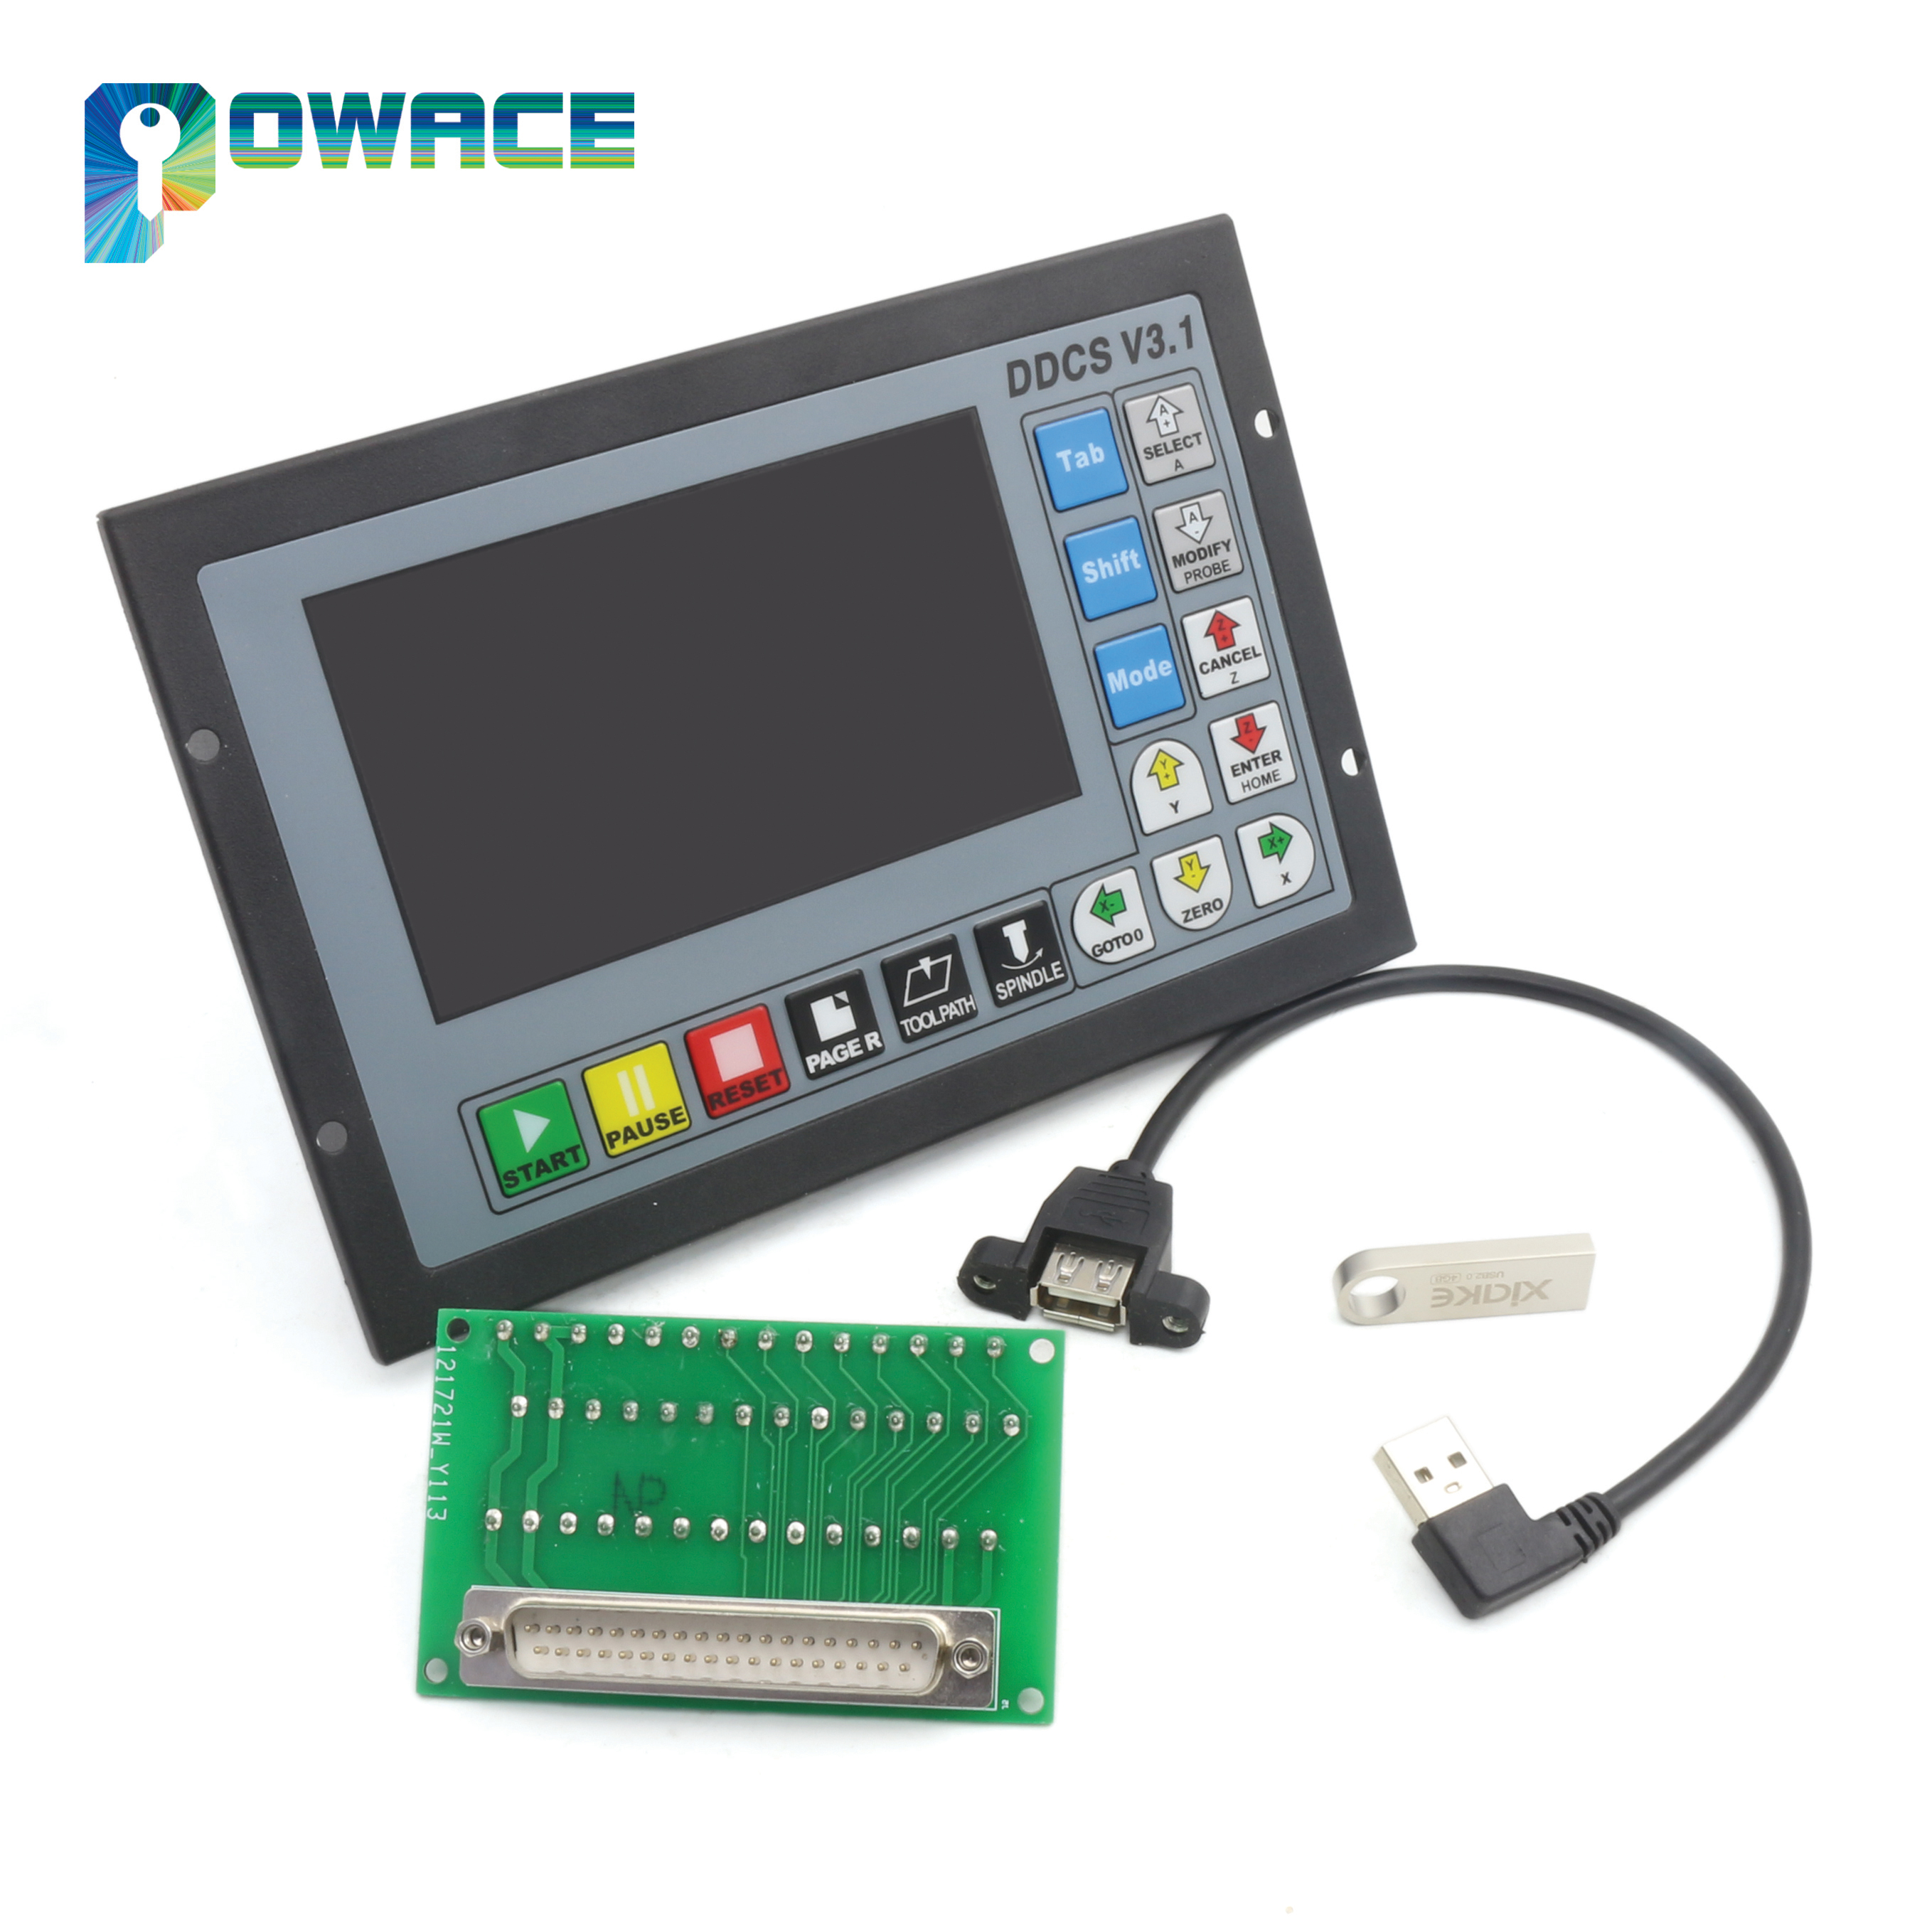 [New Arrival] 3 Axis DDCS V3.1 Standalone Motion Offline CNC Controller 5 inches TFT screen